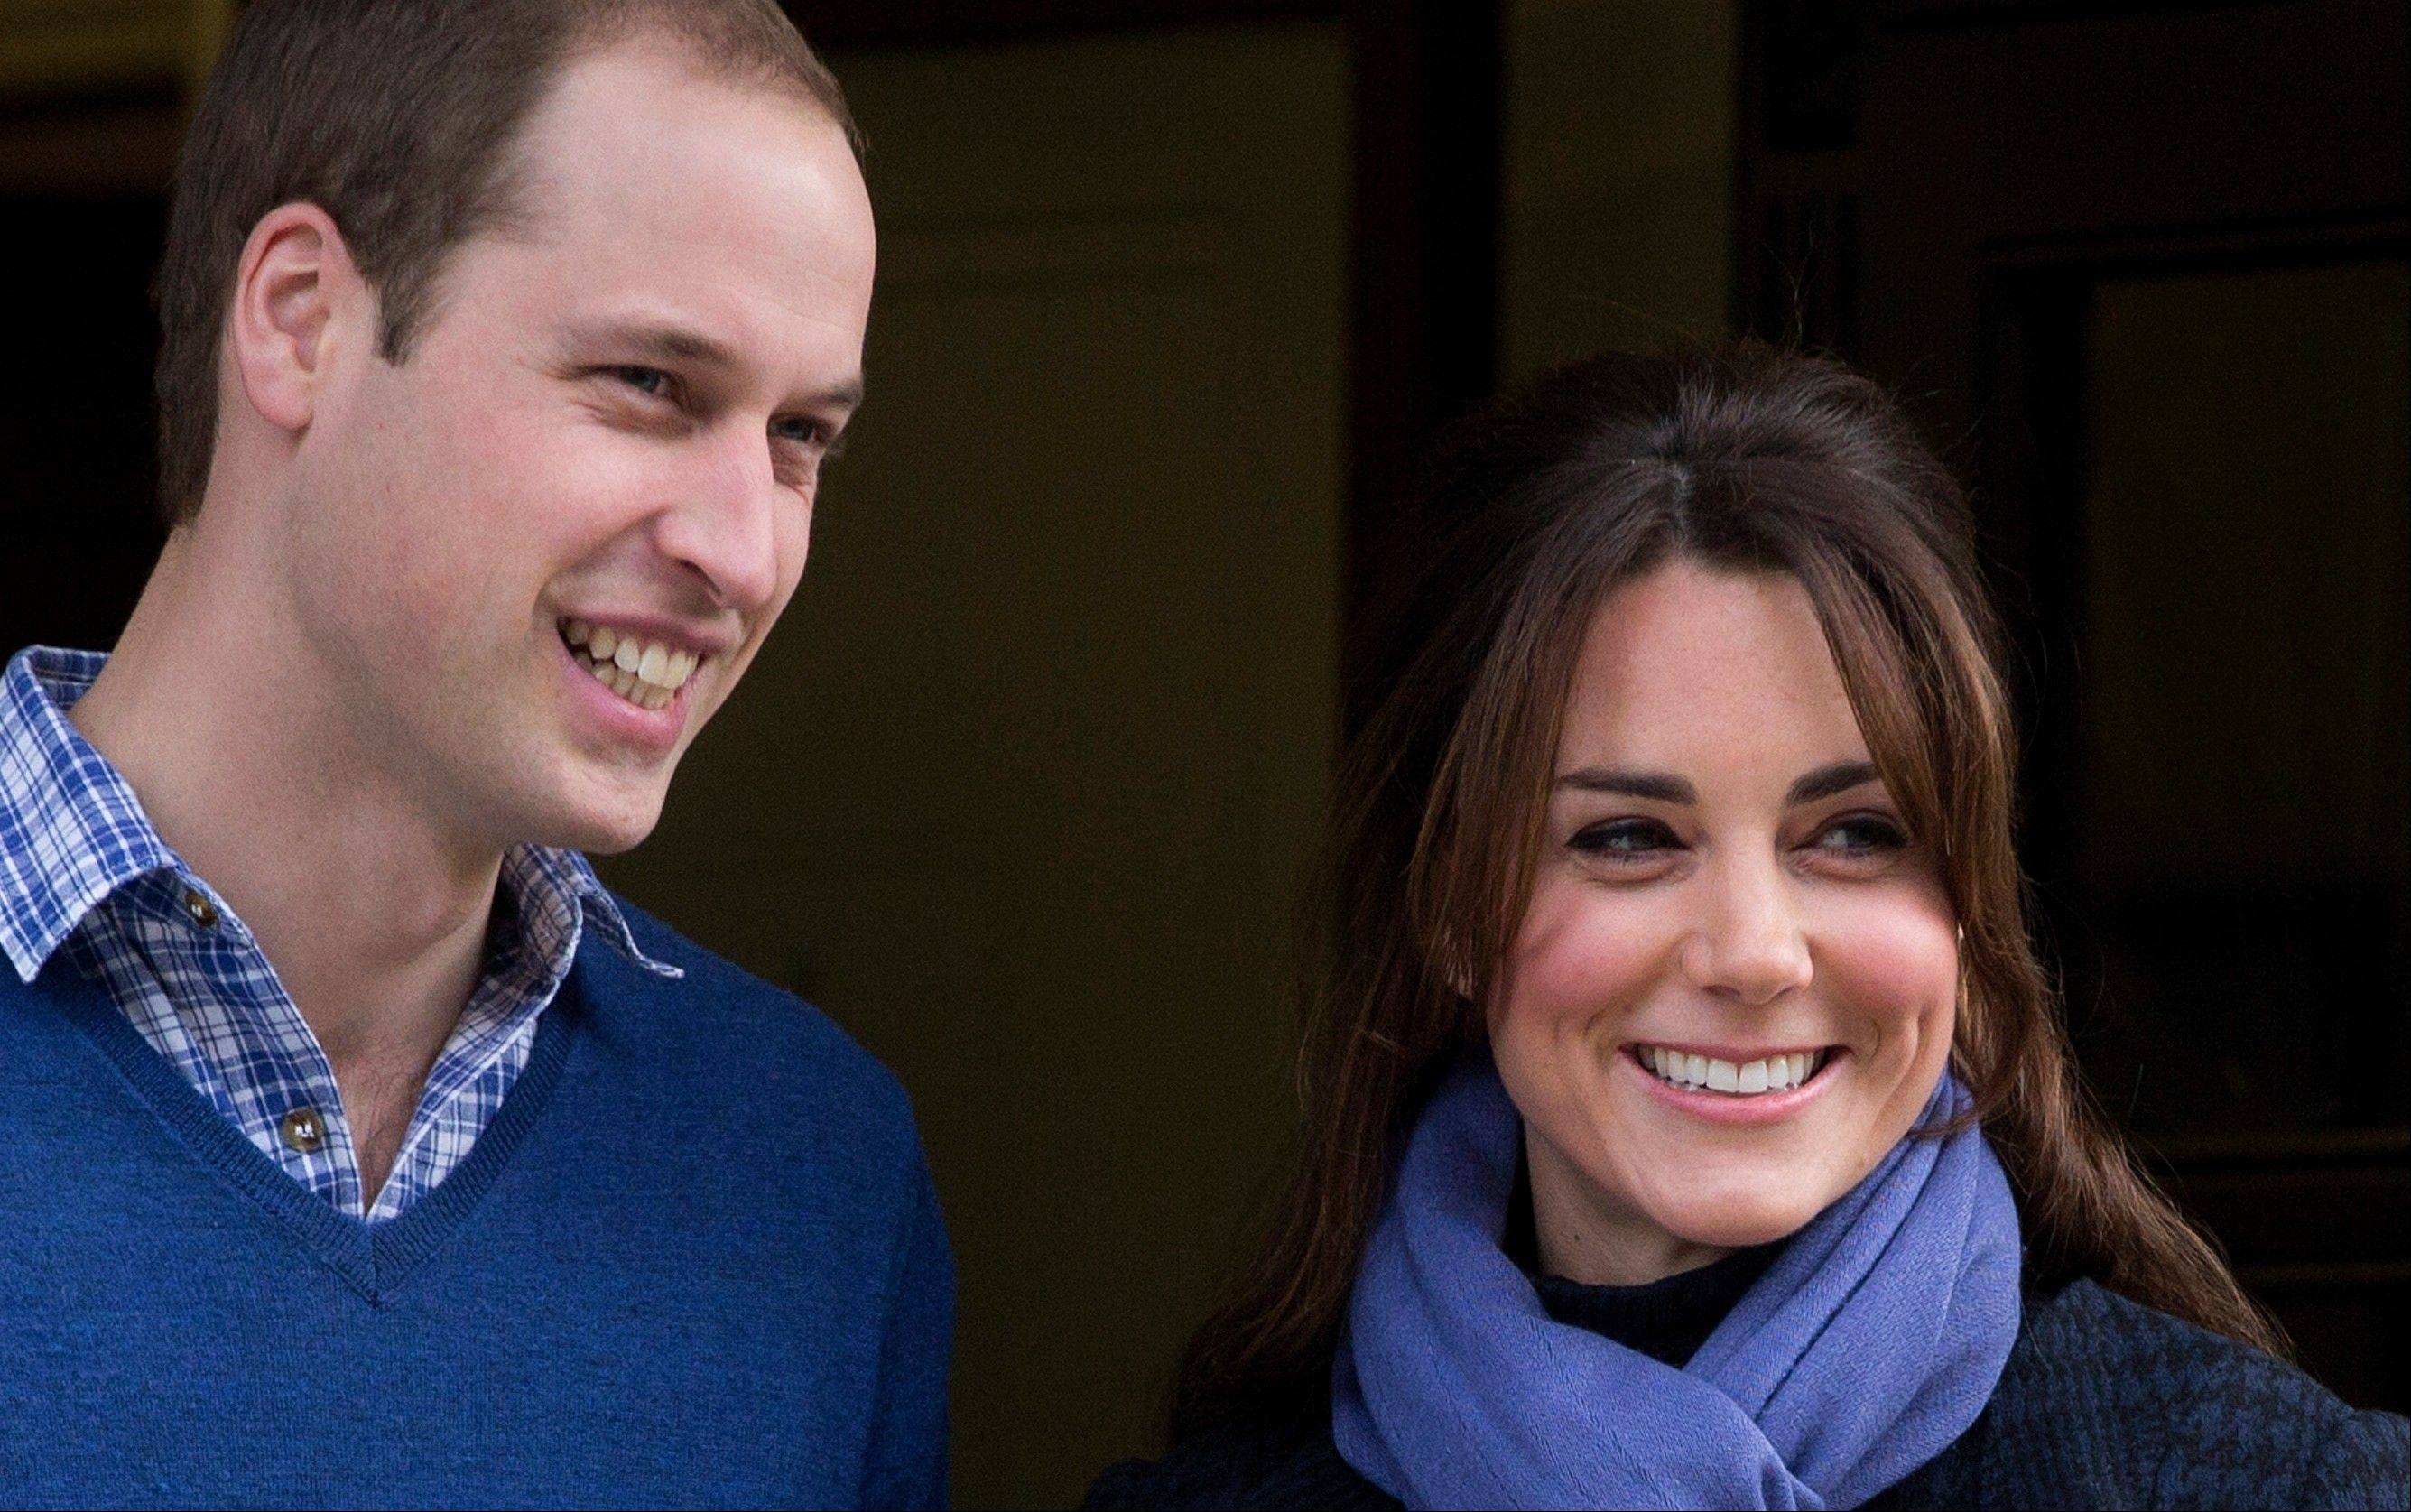 Britain's Prince William stand next to his wife Kate, Duchess of Cambridge as she leaves the King Edward VII hospital in central London, Thursday, Dec. 6, 2012. A nurse involved in a prank telephone call seeking information about the Duchess of Cambridge has died, King Edward VII hospital said Friday.